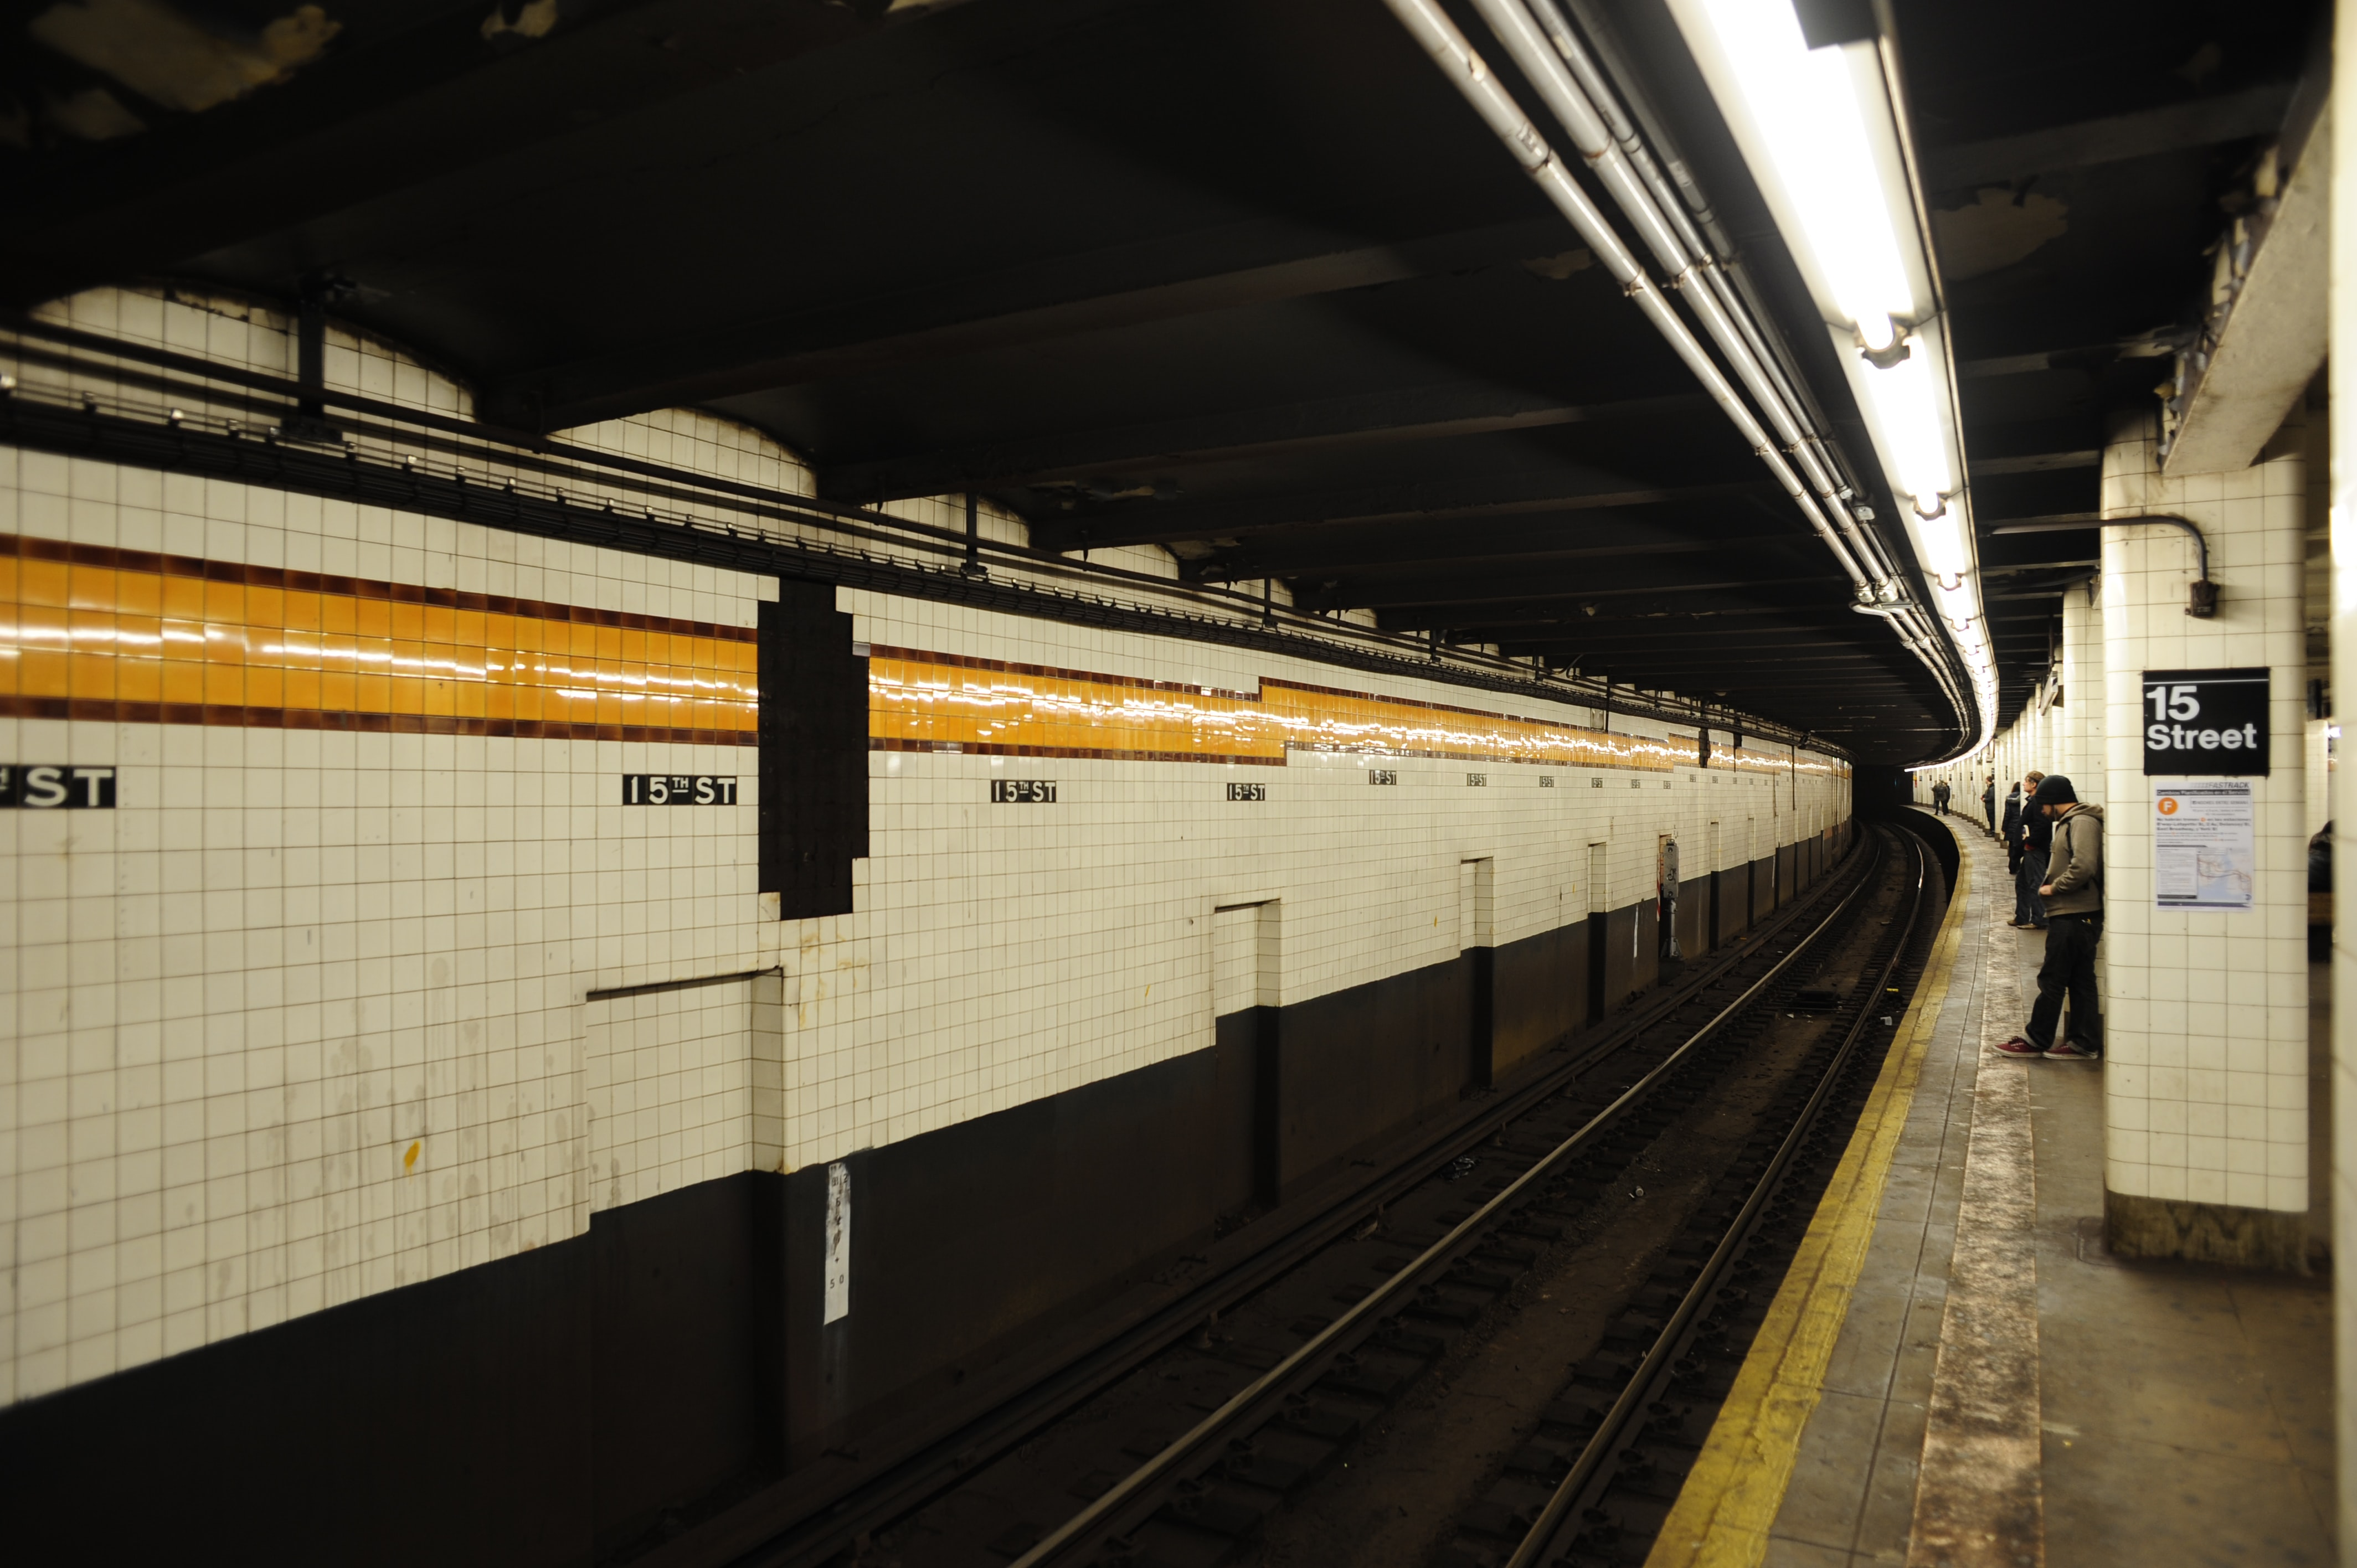 New York City underground subway station with people waiting for their train